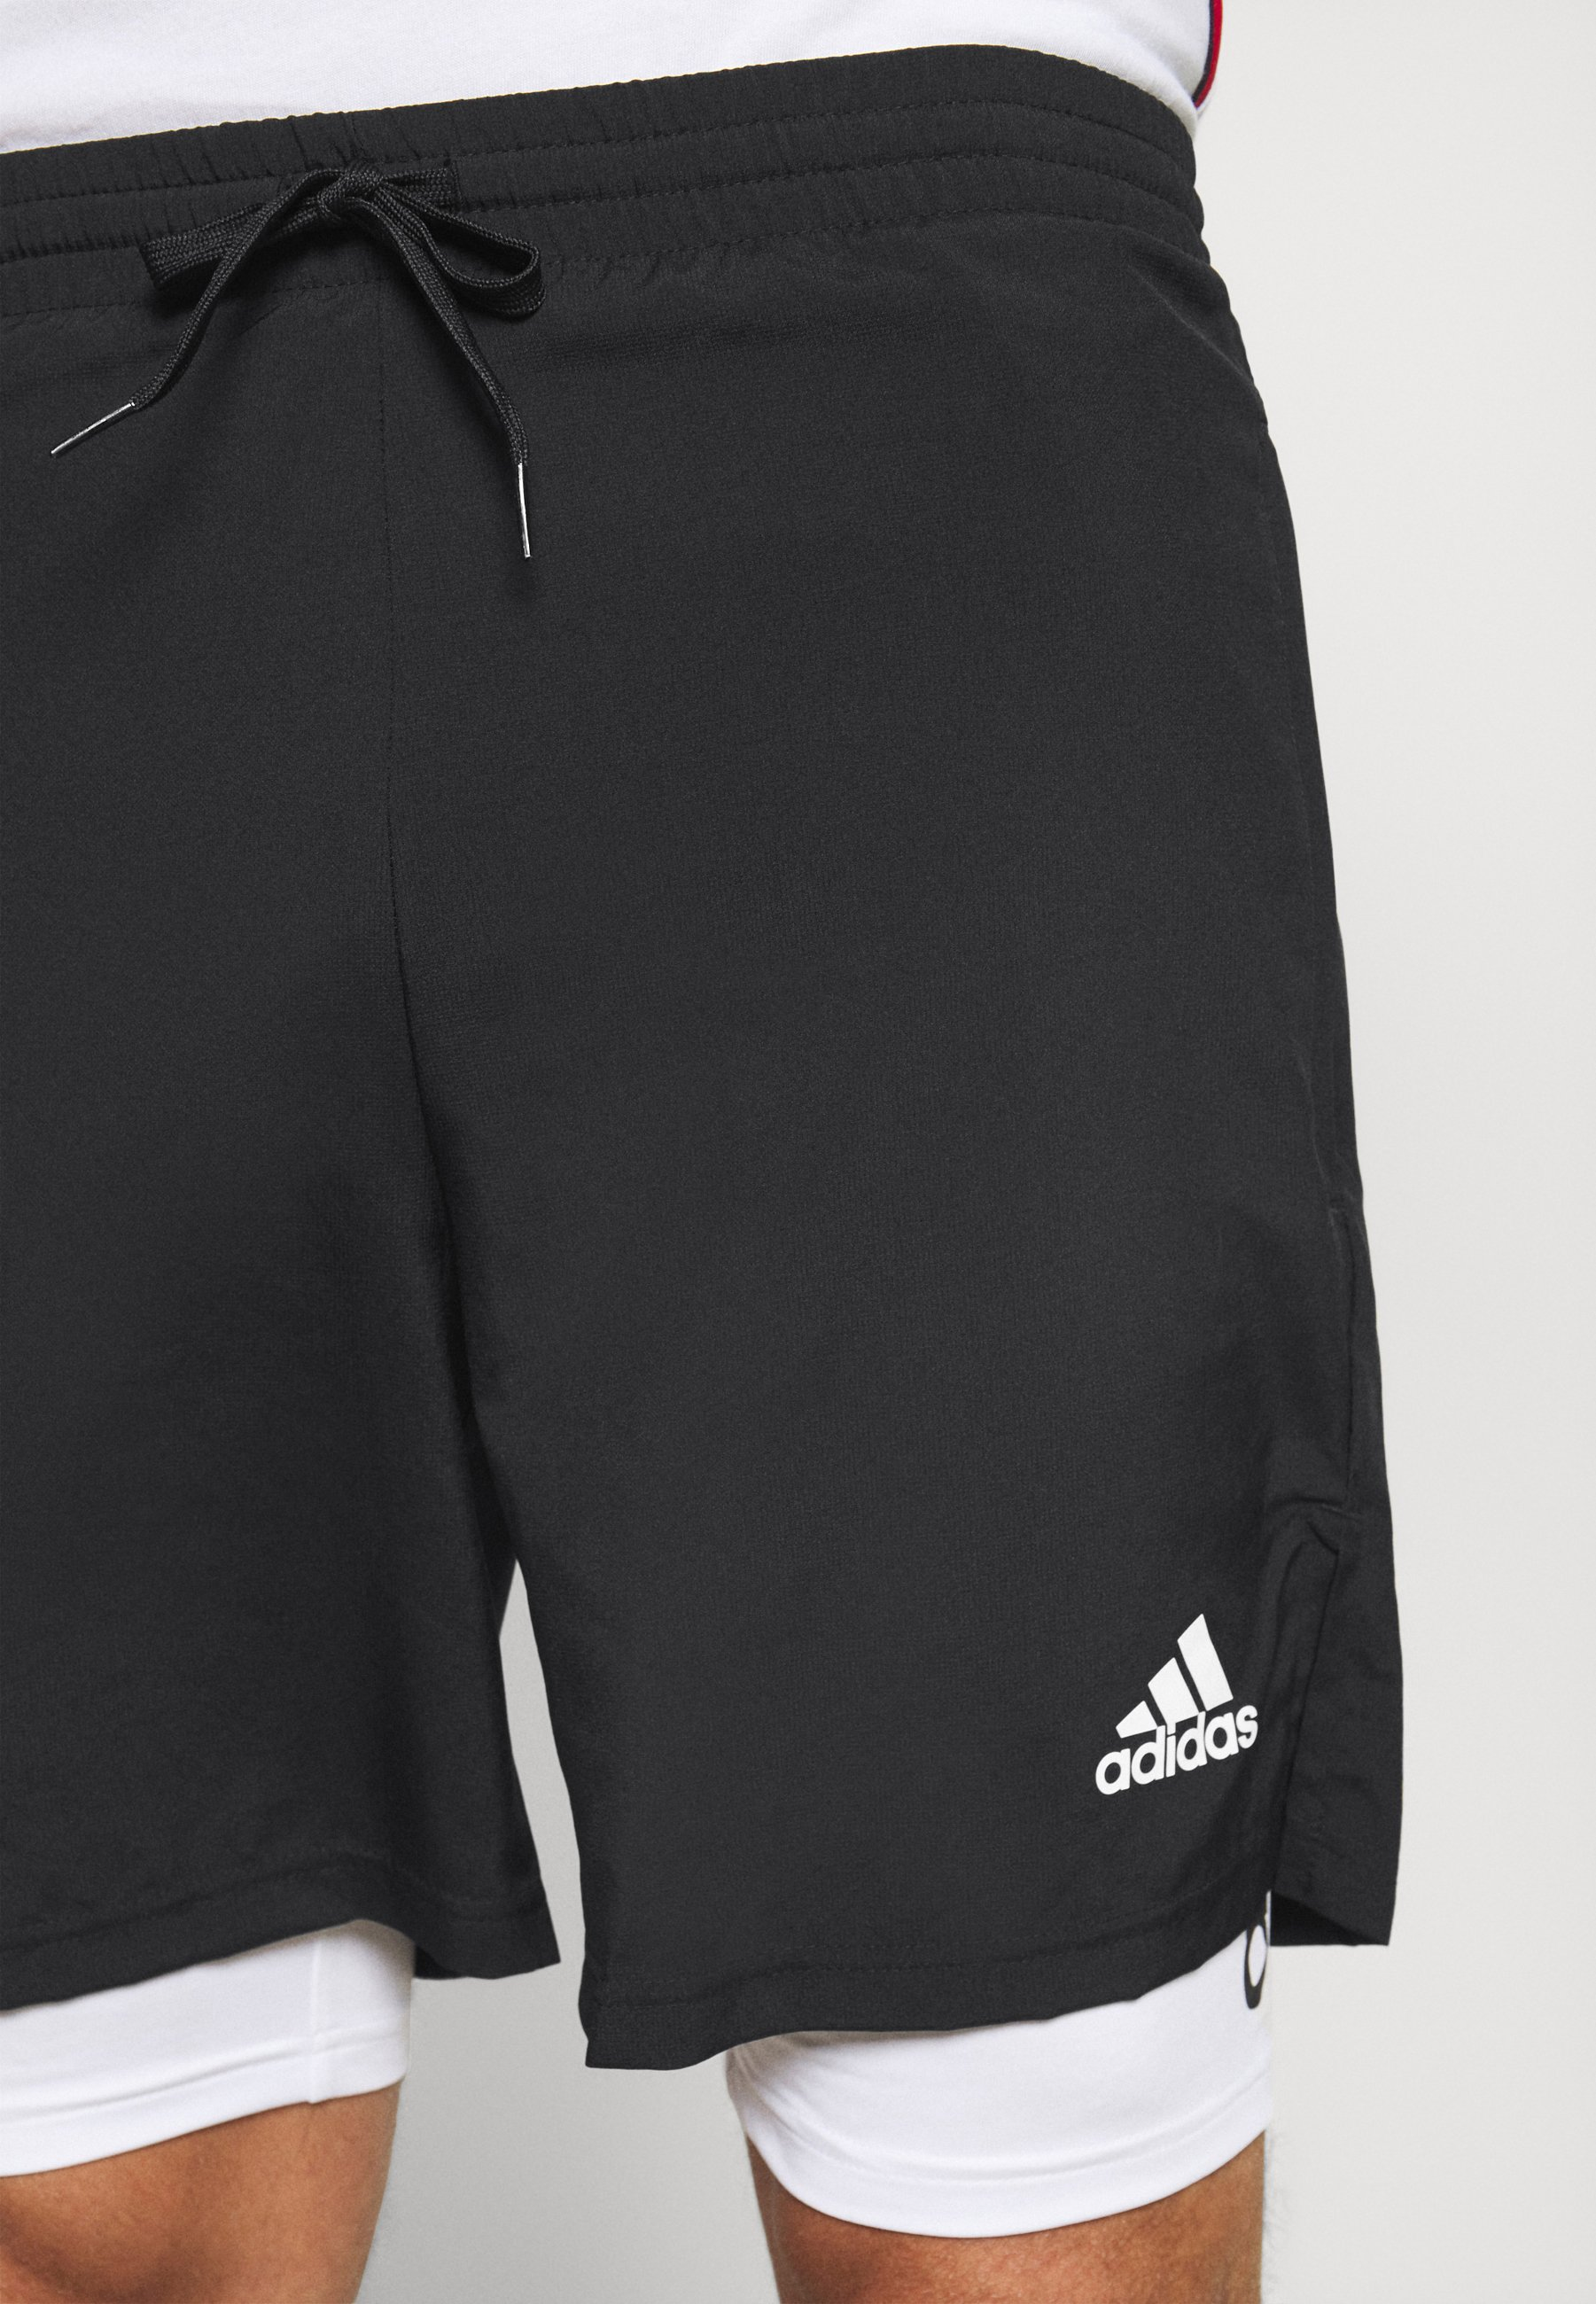 adidas Performance AEROREADY TRAINING SPORTS SHORTS kurze